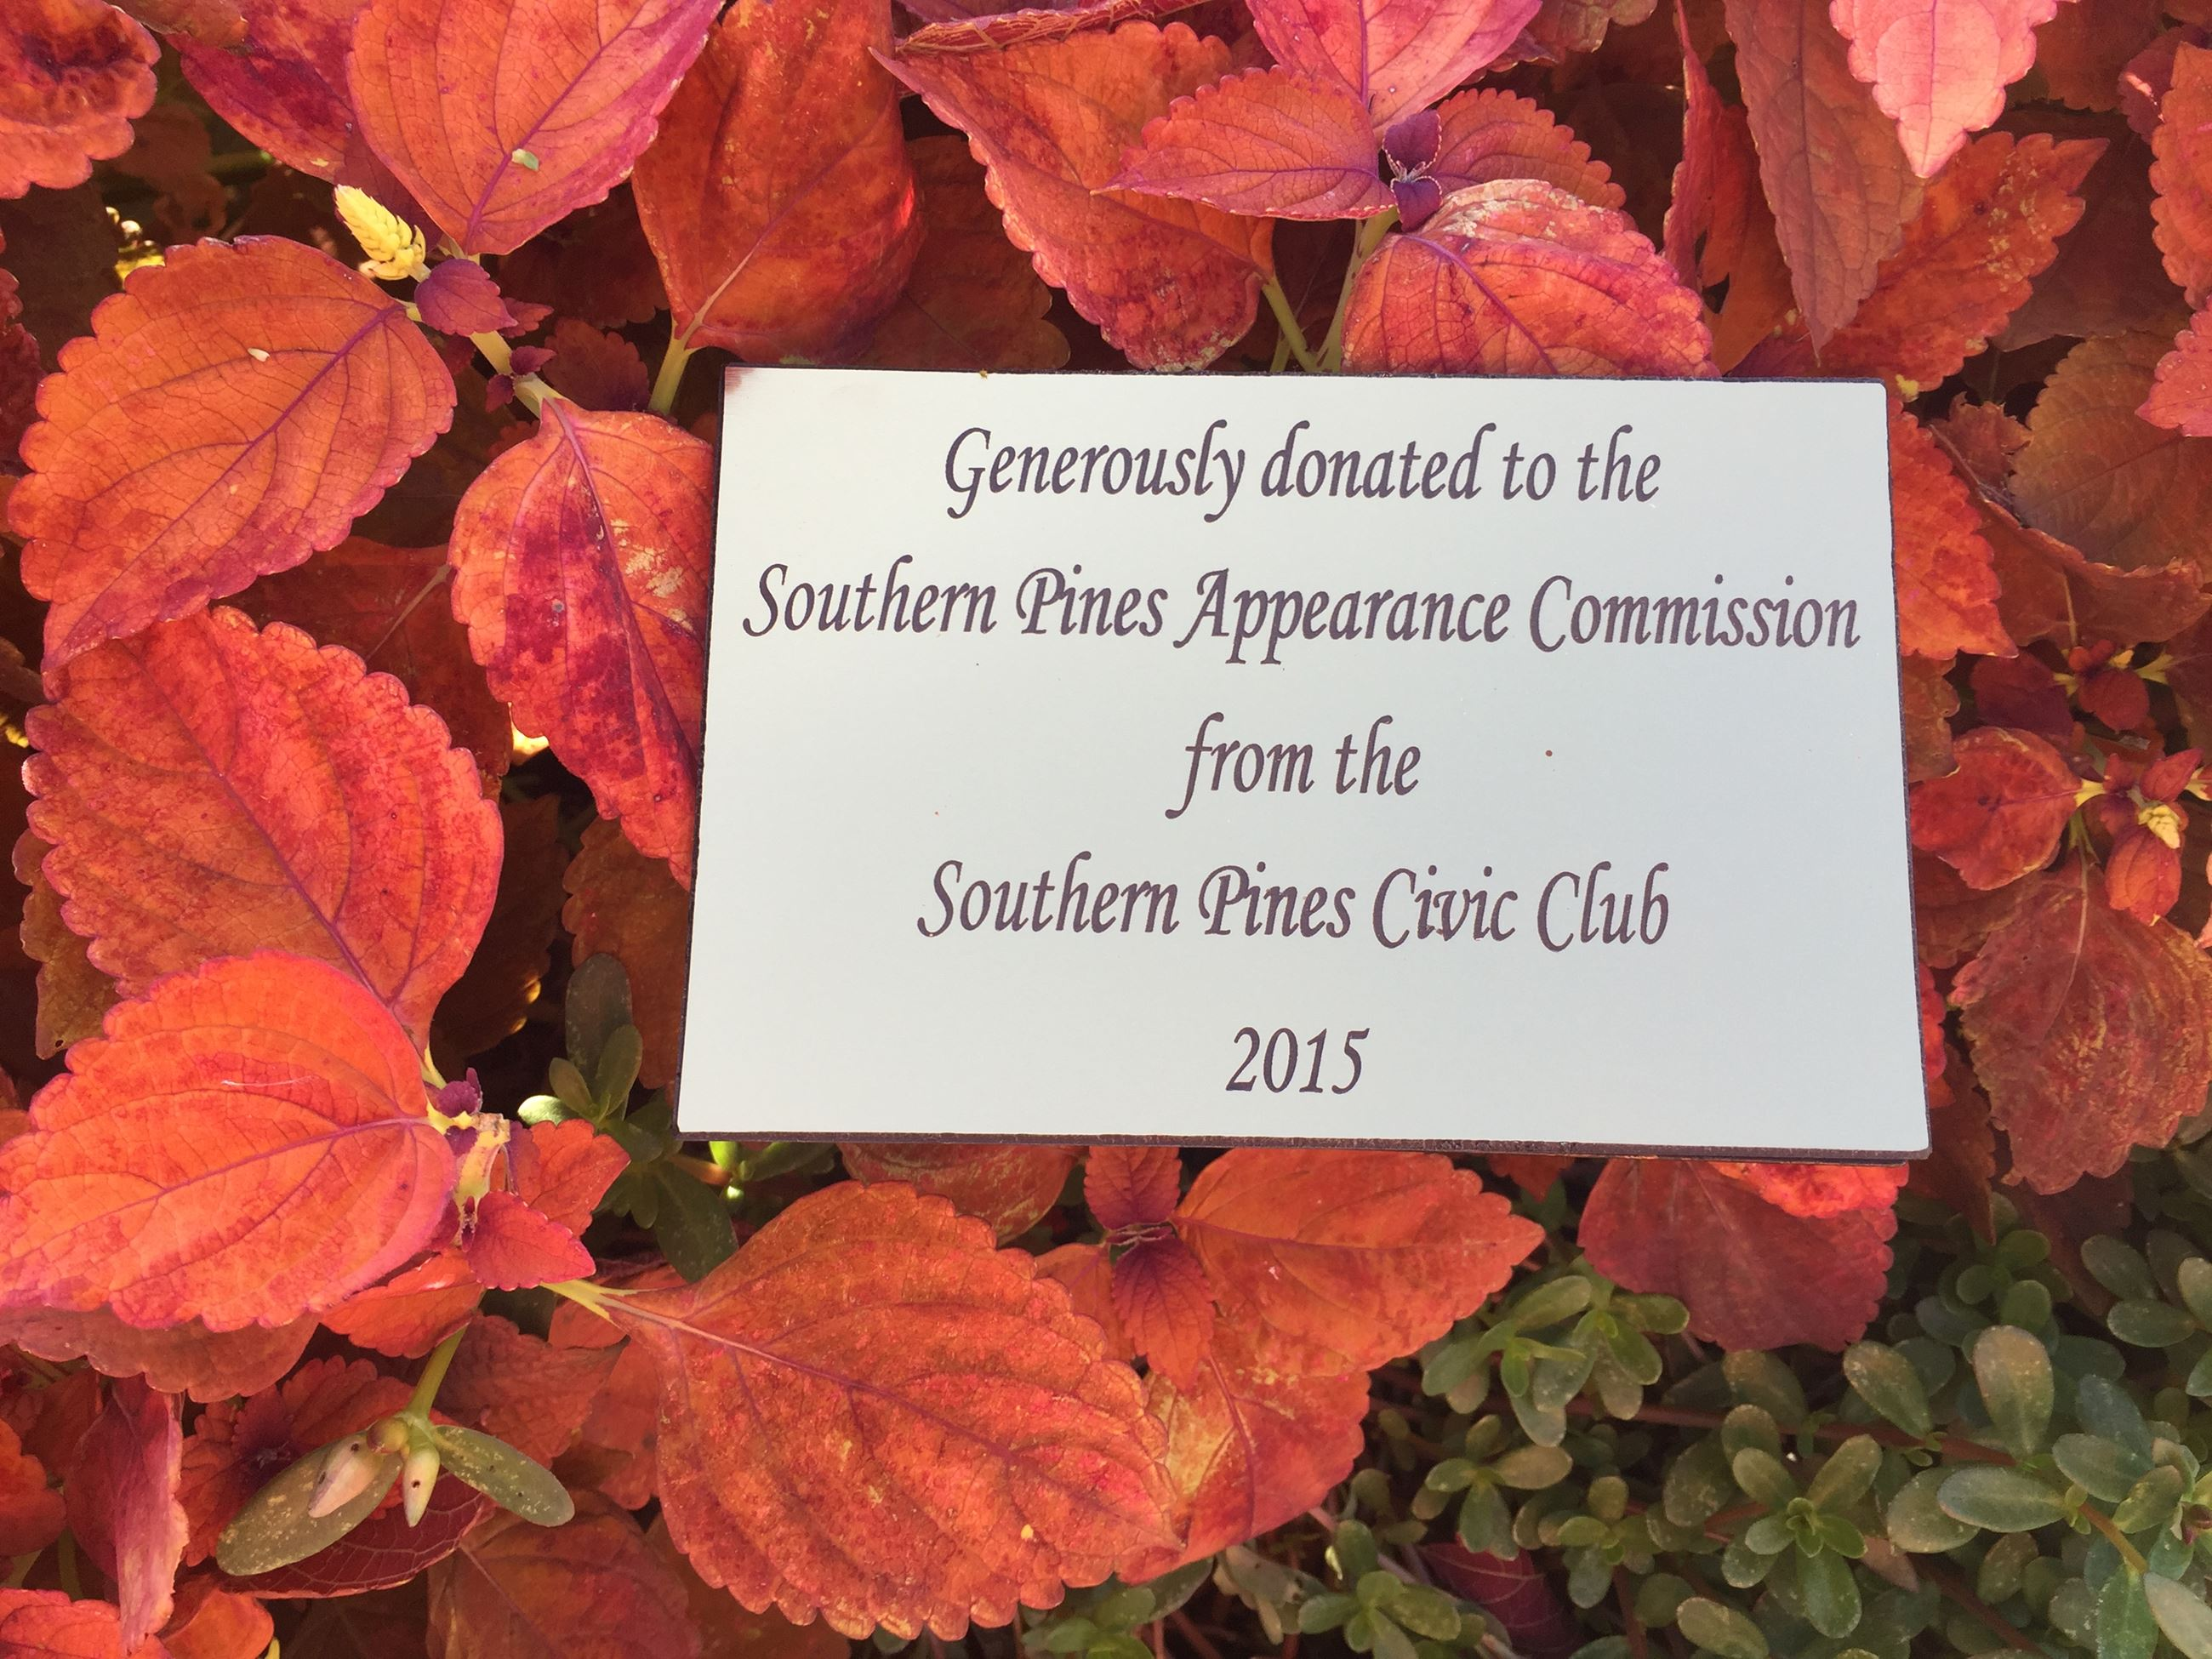 Southern Pines Civic Club Donation